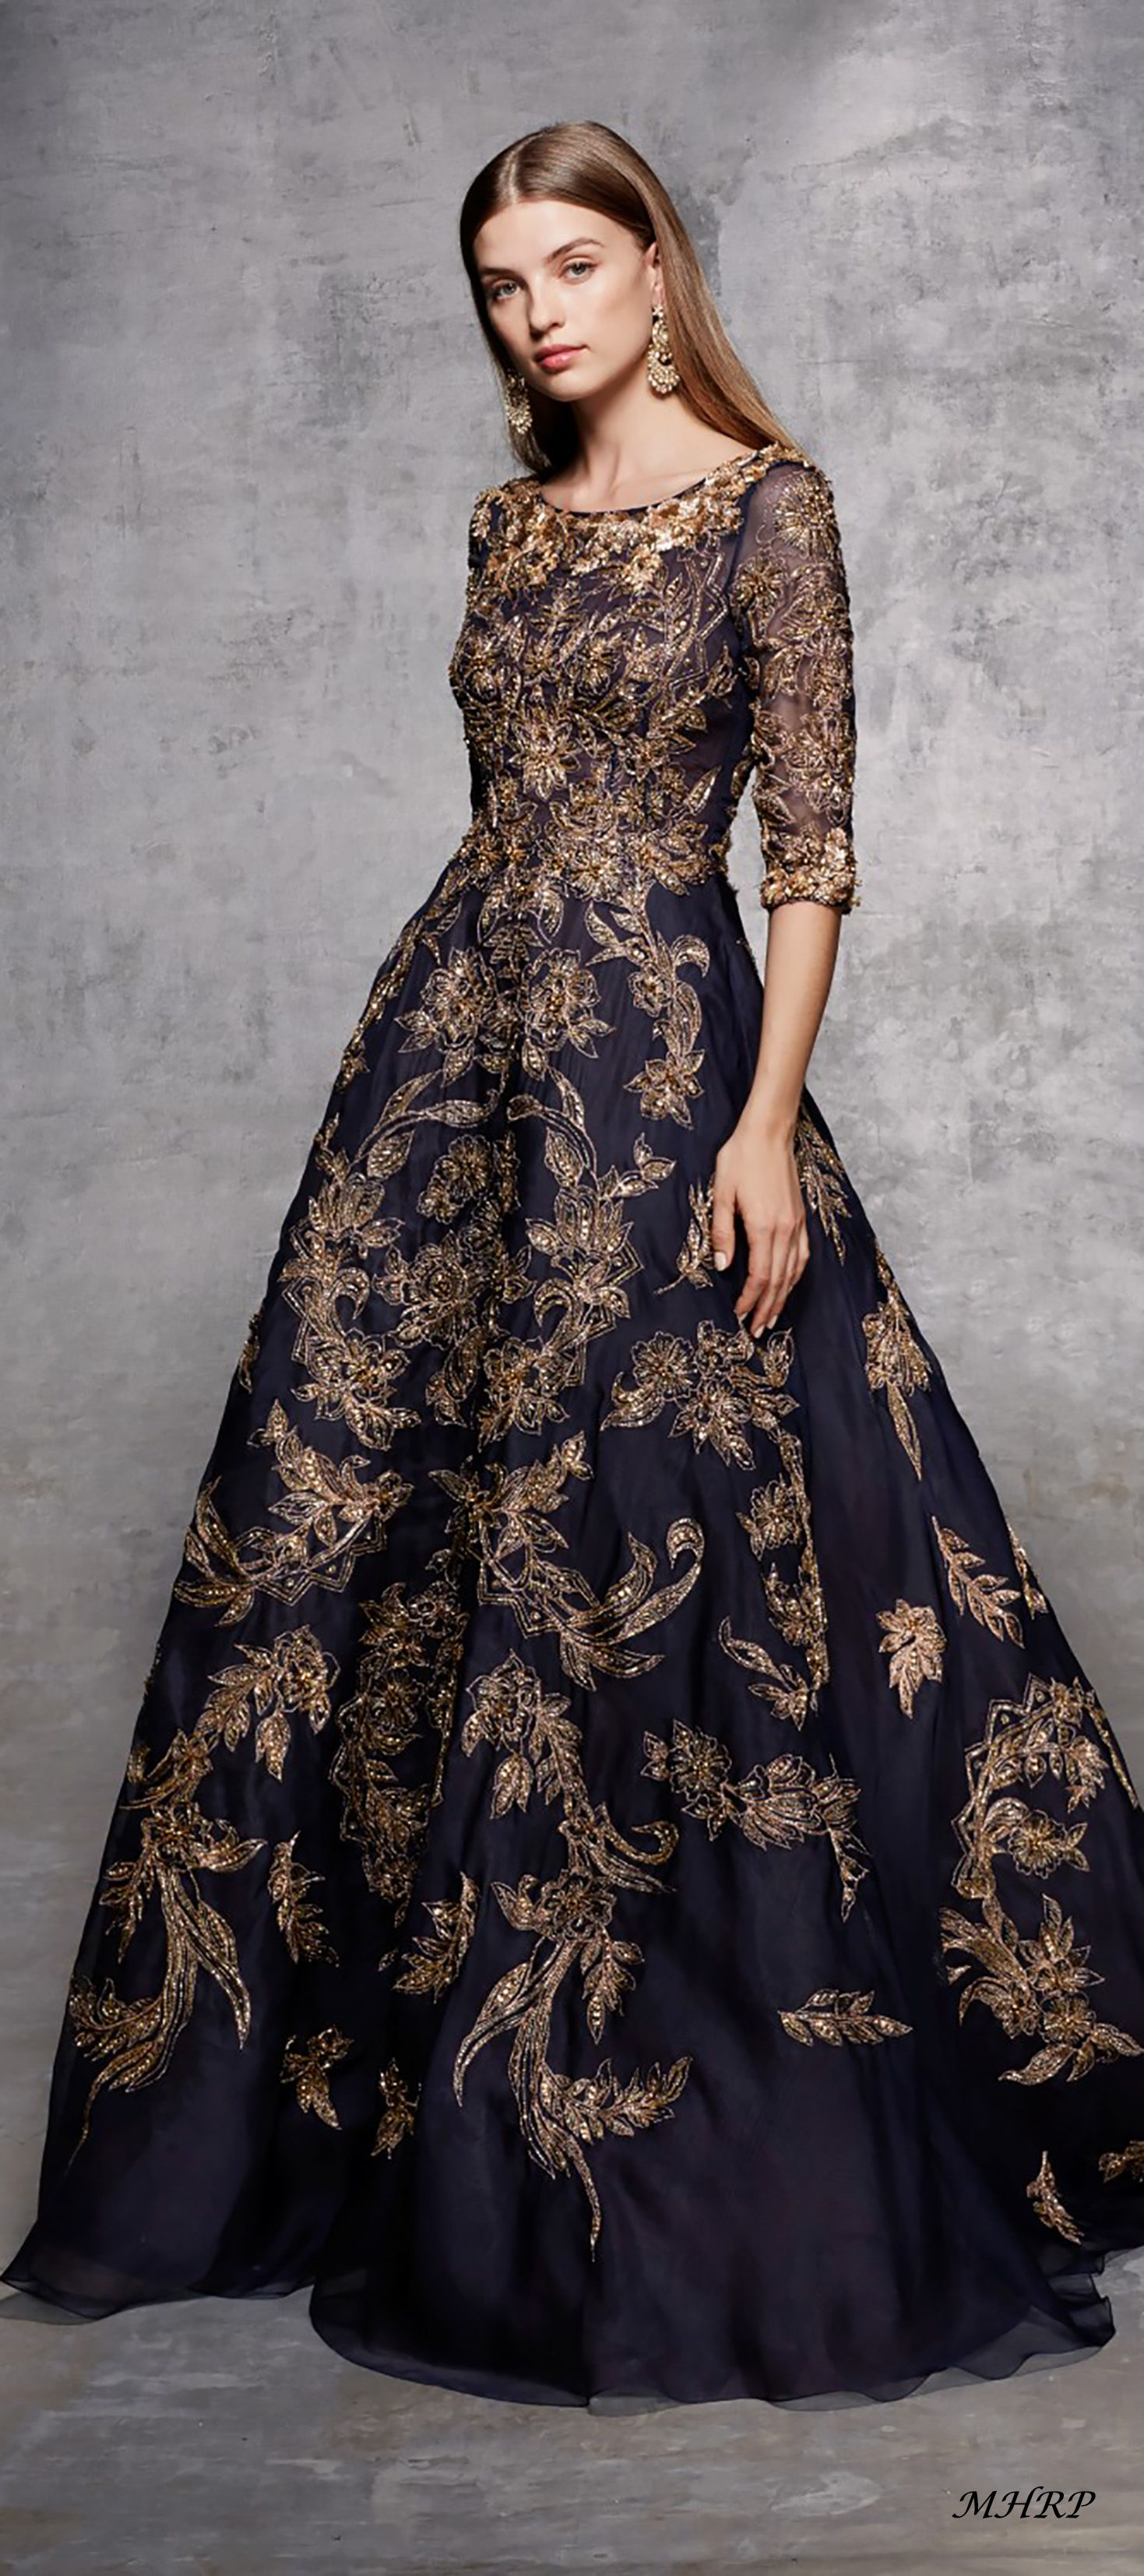 Marchesa Pre Fall 2018 image pinned from marchesa